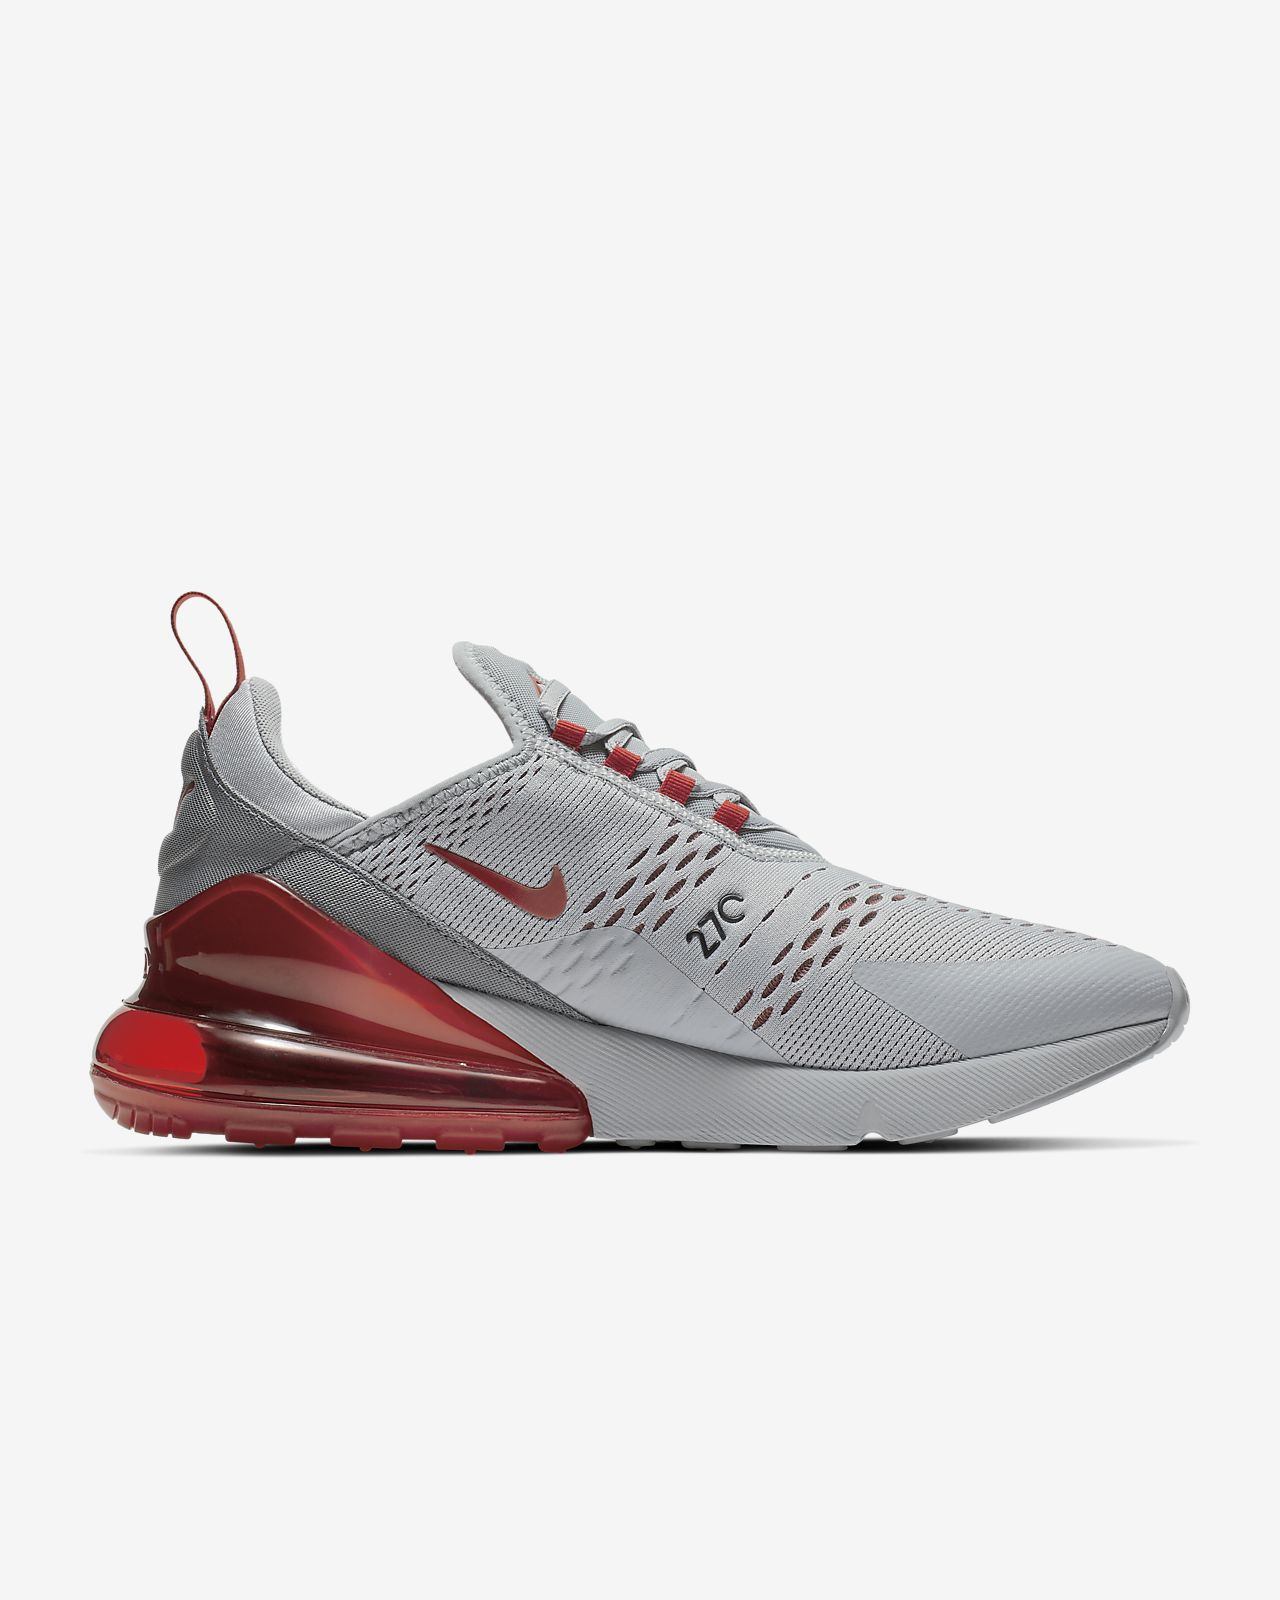 lowest price 25406 79bb6 ... Nike Air Max 270 Men s Shoe